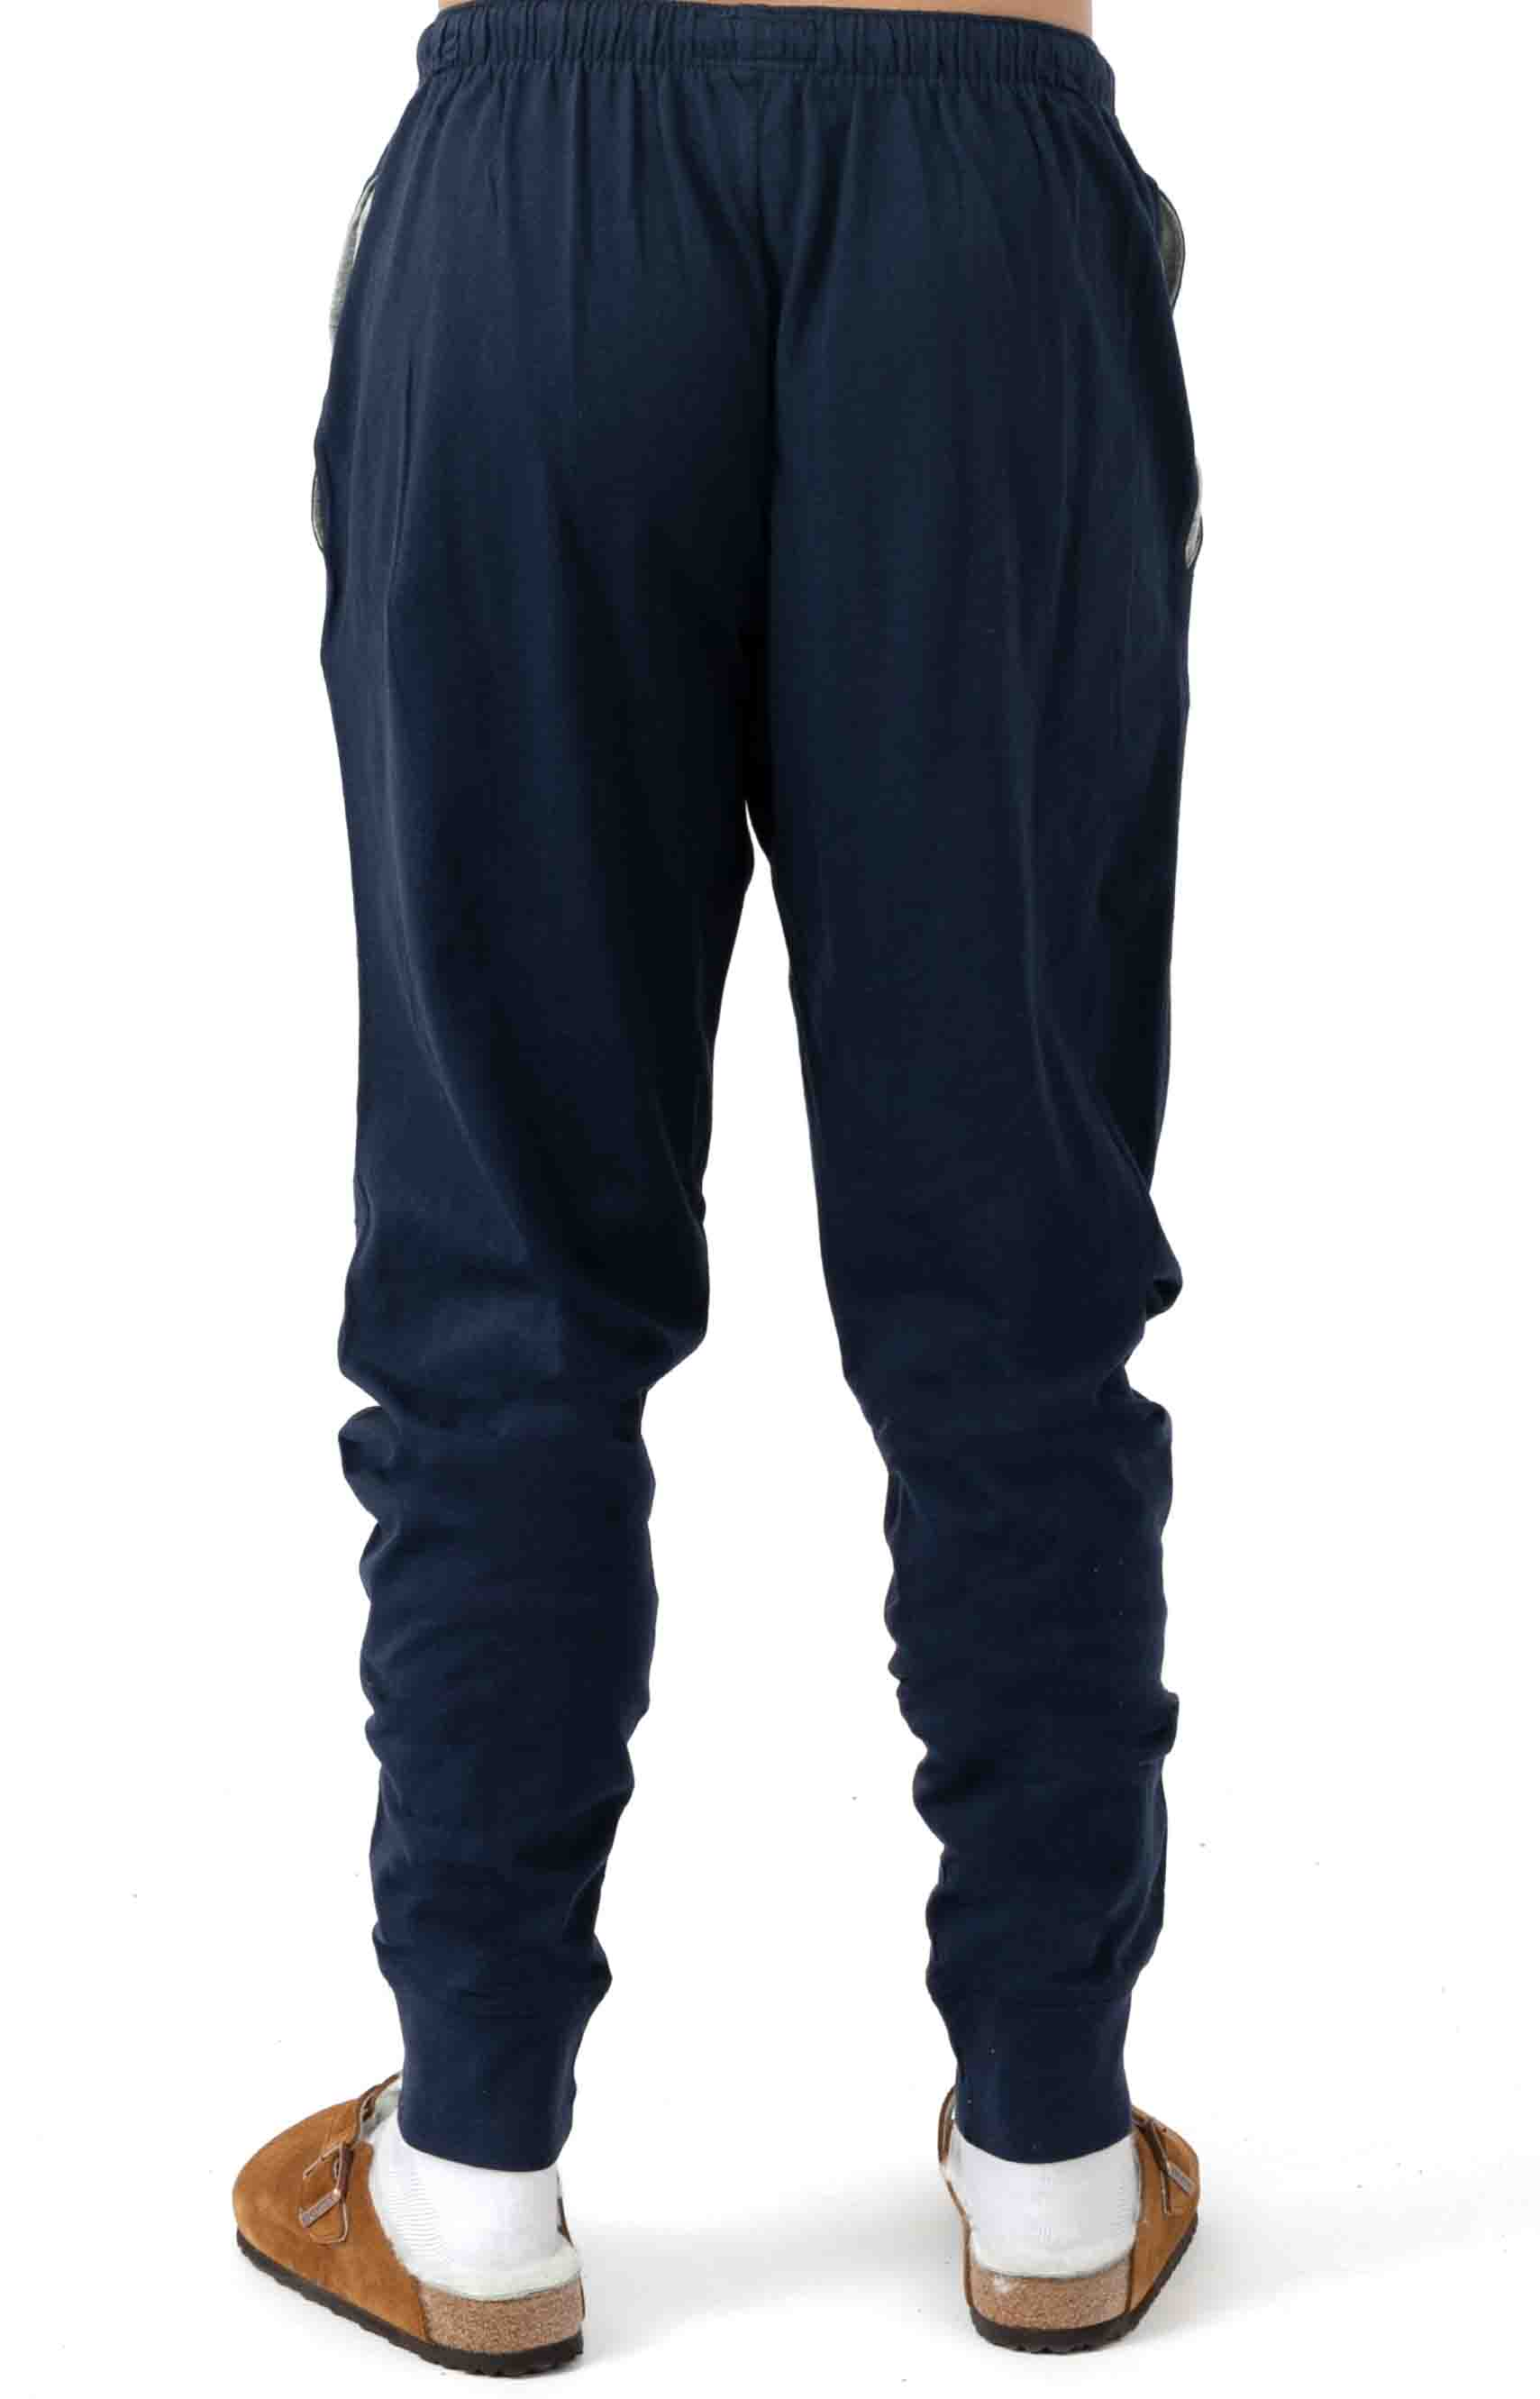 (L2049V) Relaxed Fit Jogger Cuff Sleep Pant - Cruise Navy 3